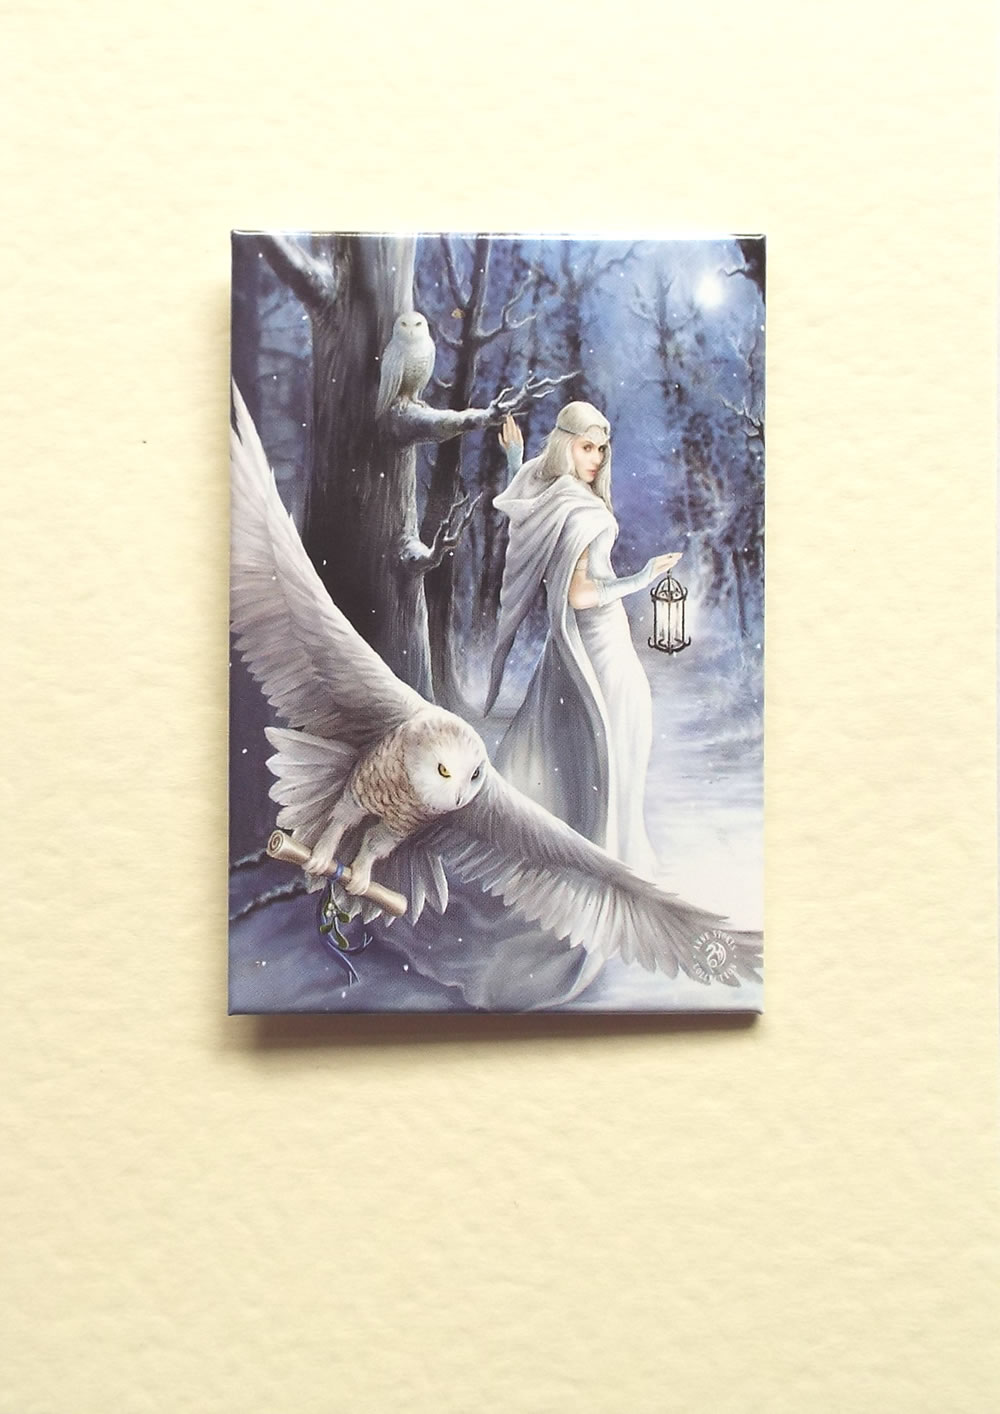 White owl midnight messenger greetings card by anne stokes with midnight messenger greetings card by anne stokes with detachable magnet m4hsunfo